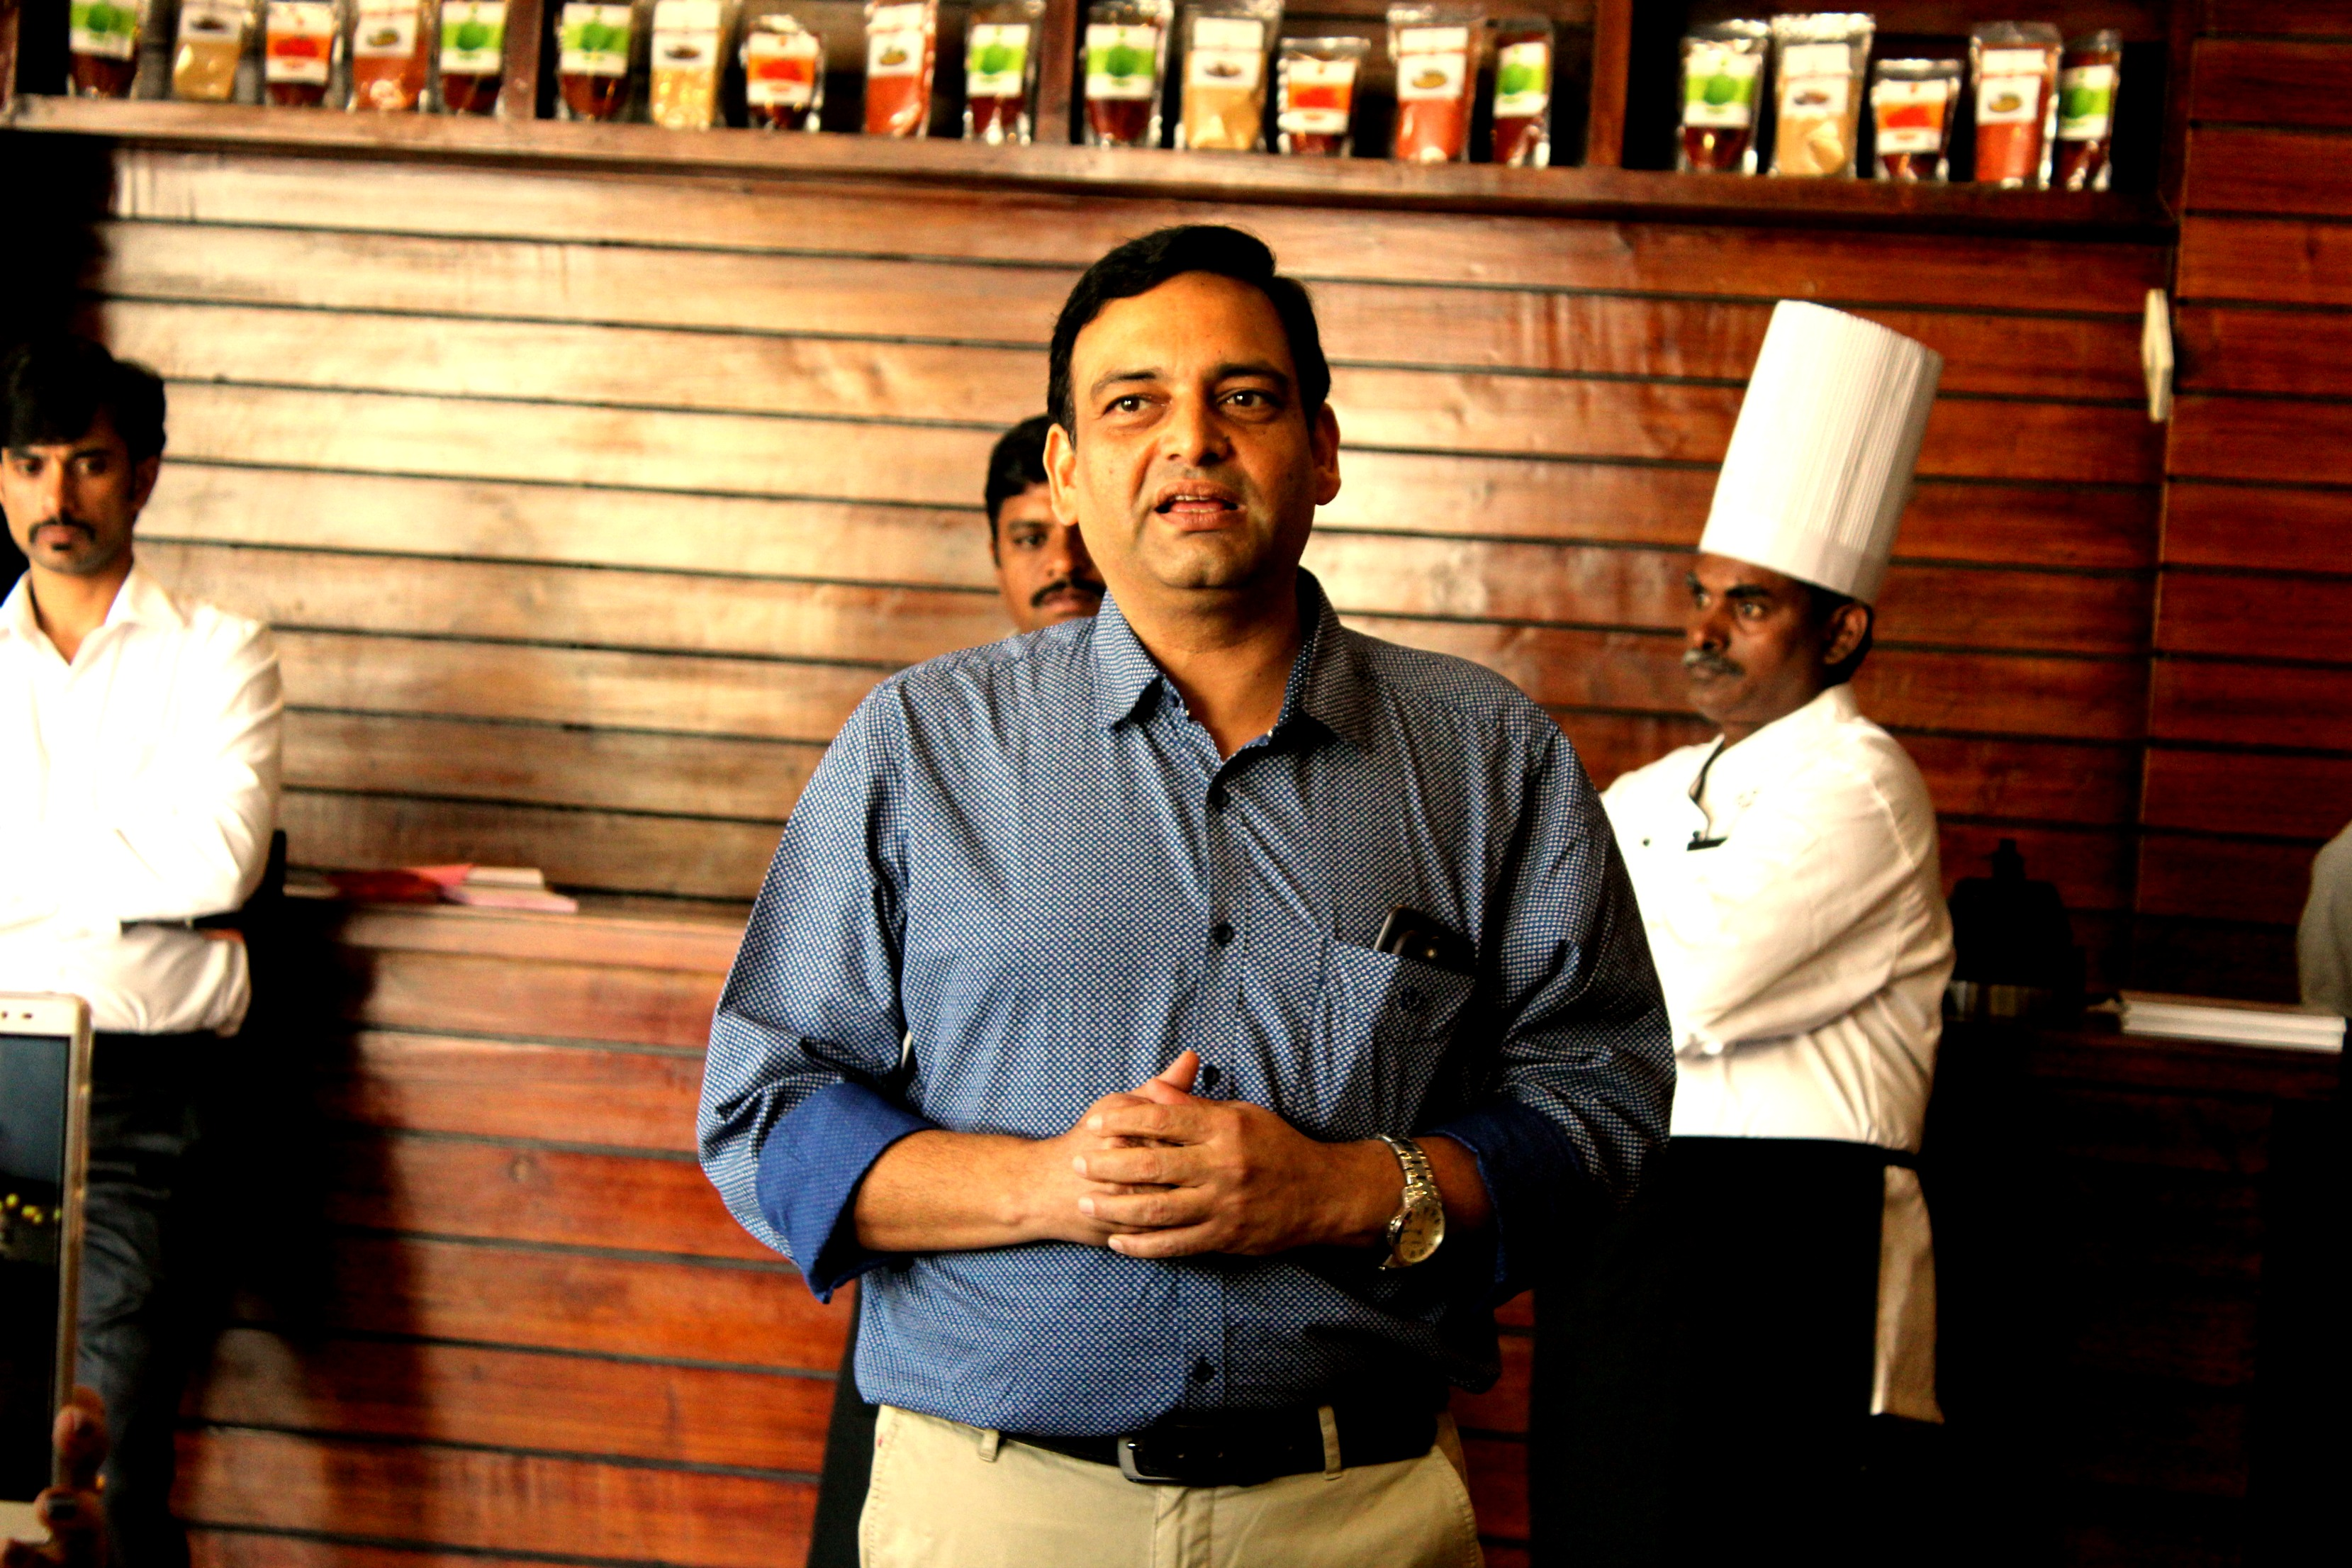 Chef Chaapathi Rao- The man behind Simply South.